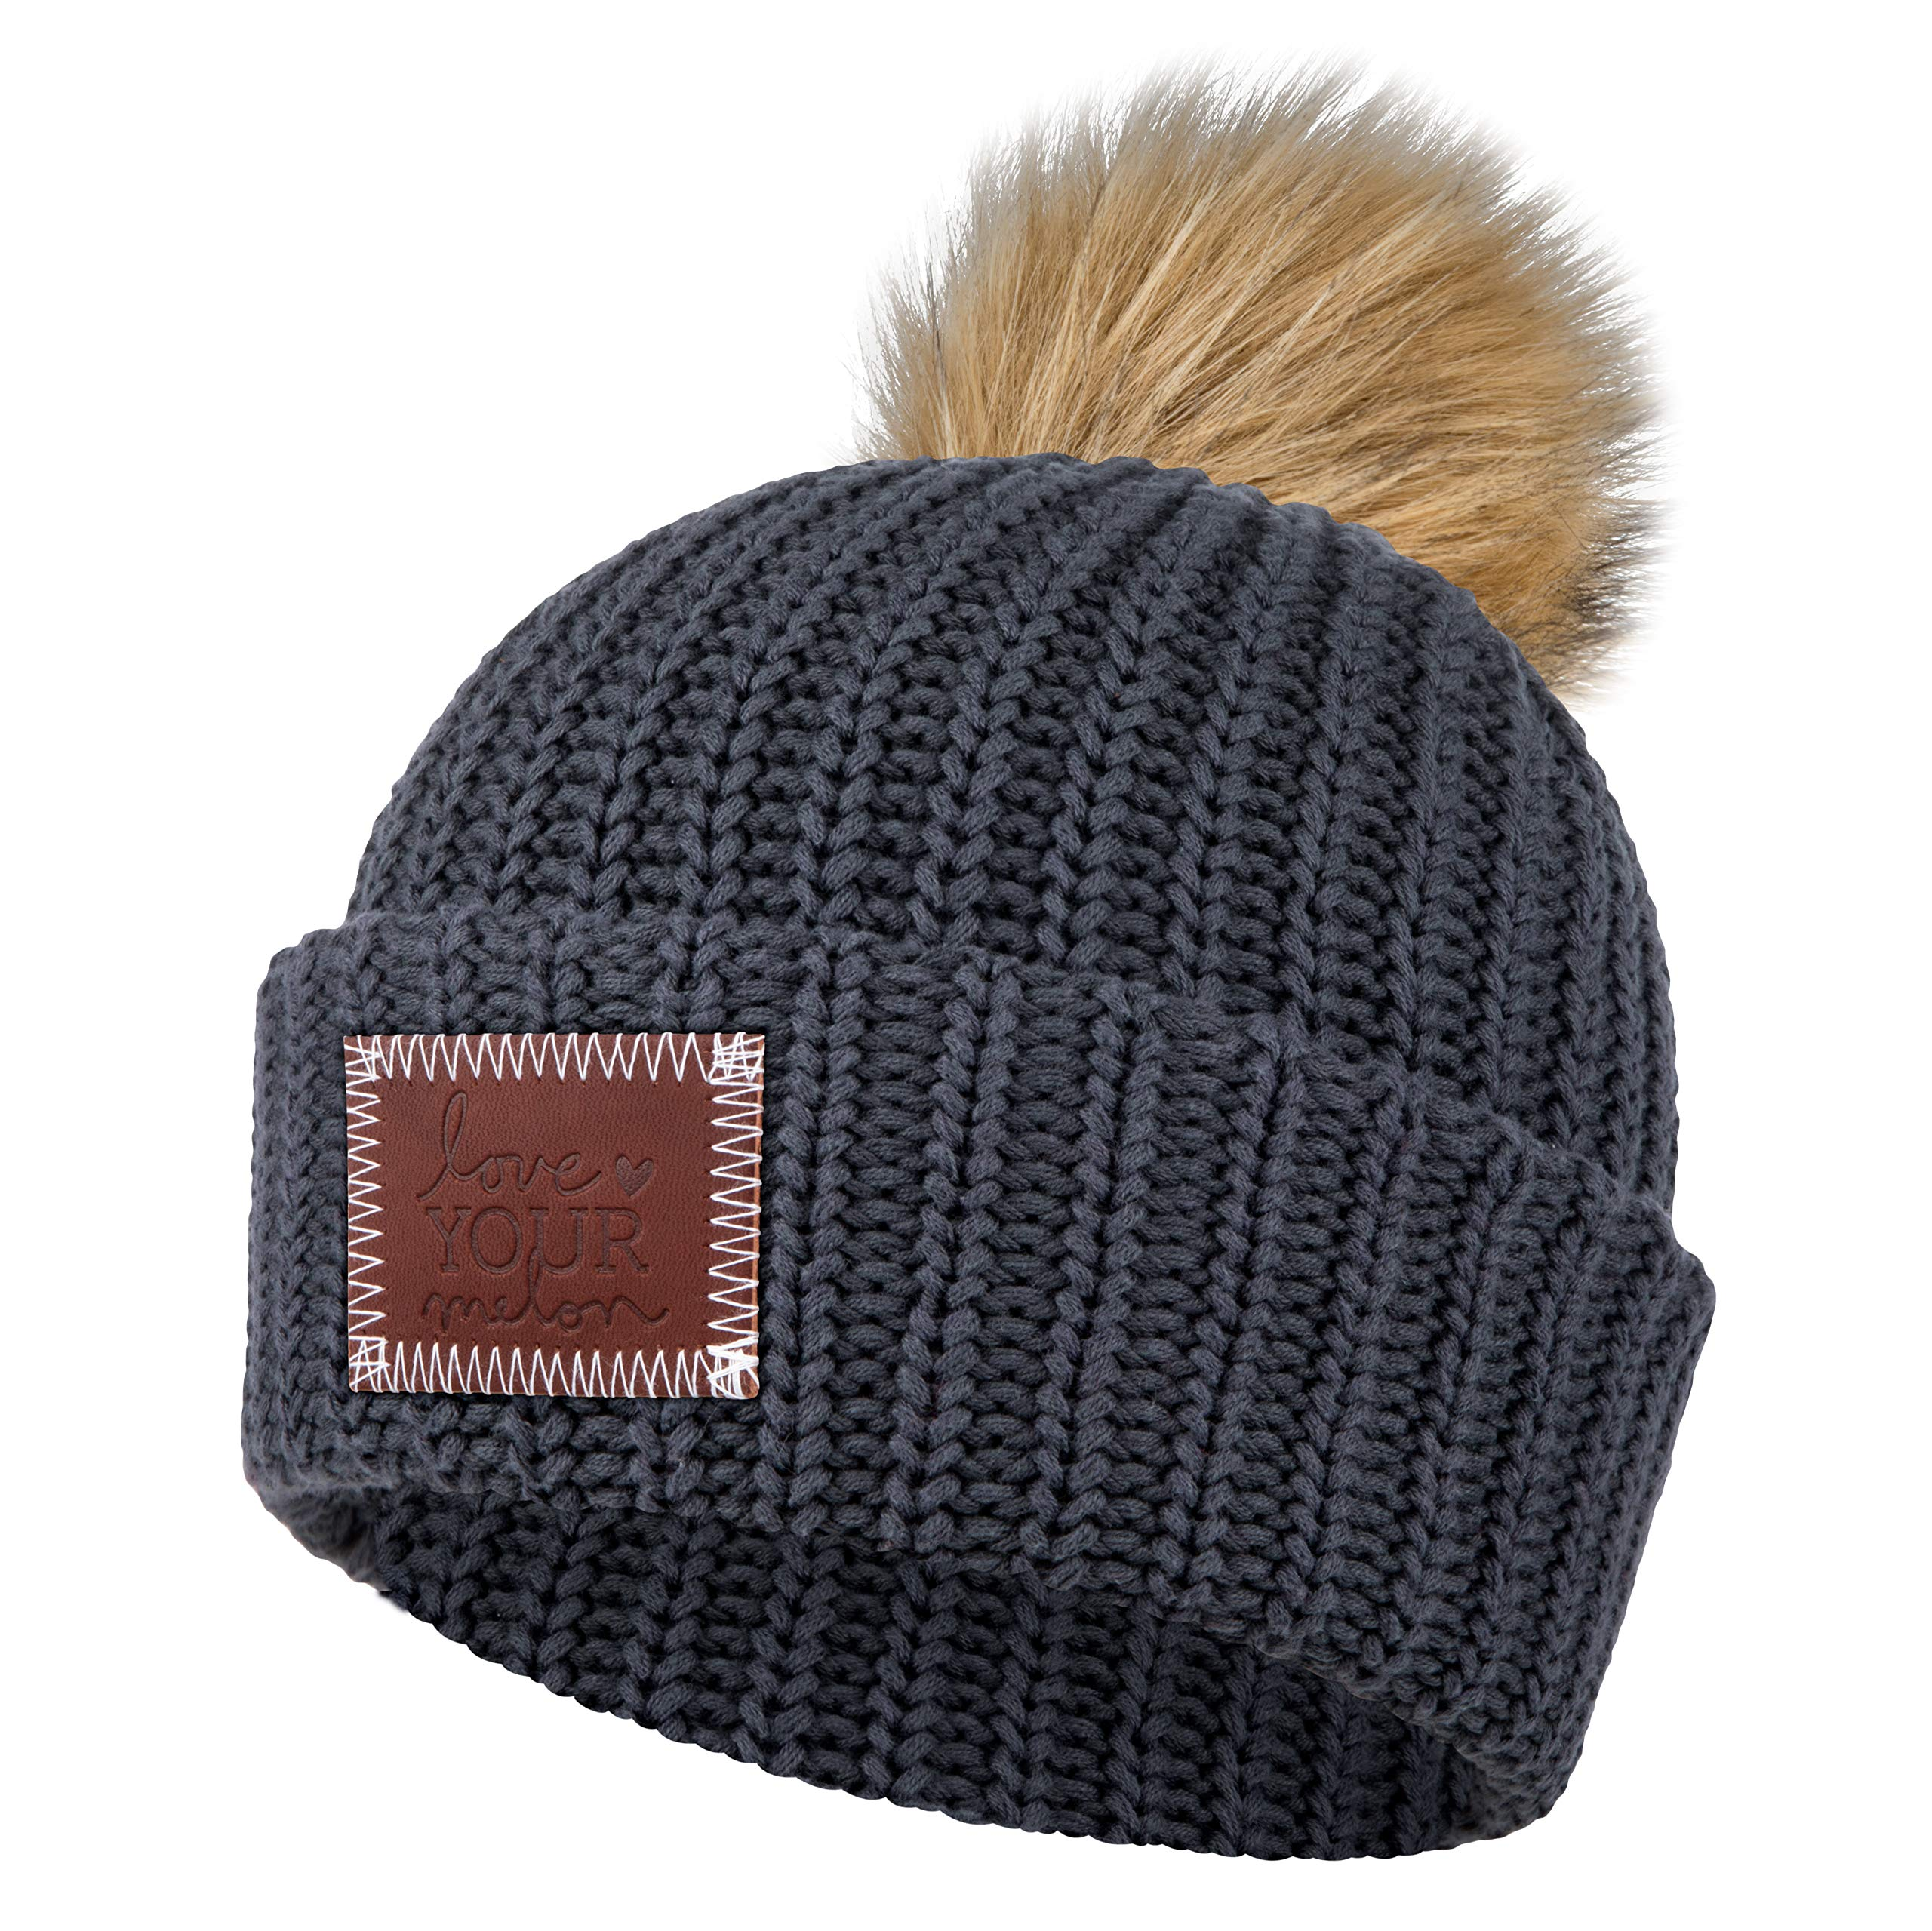 Love Your Melon Dark Charcoal Pom Beanie